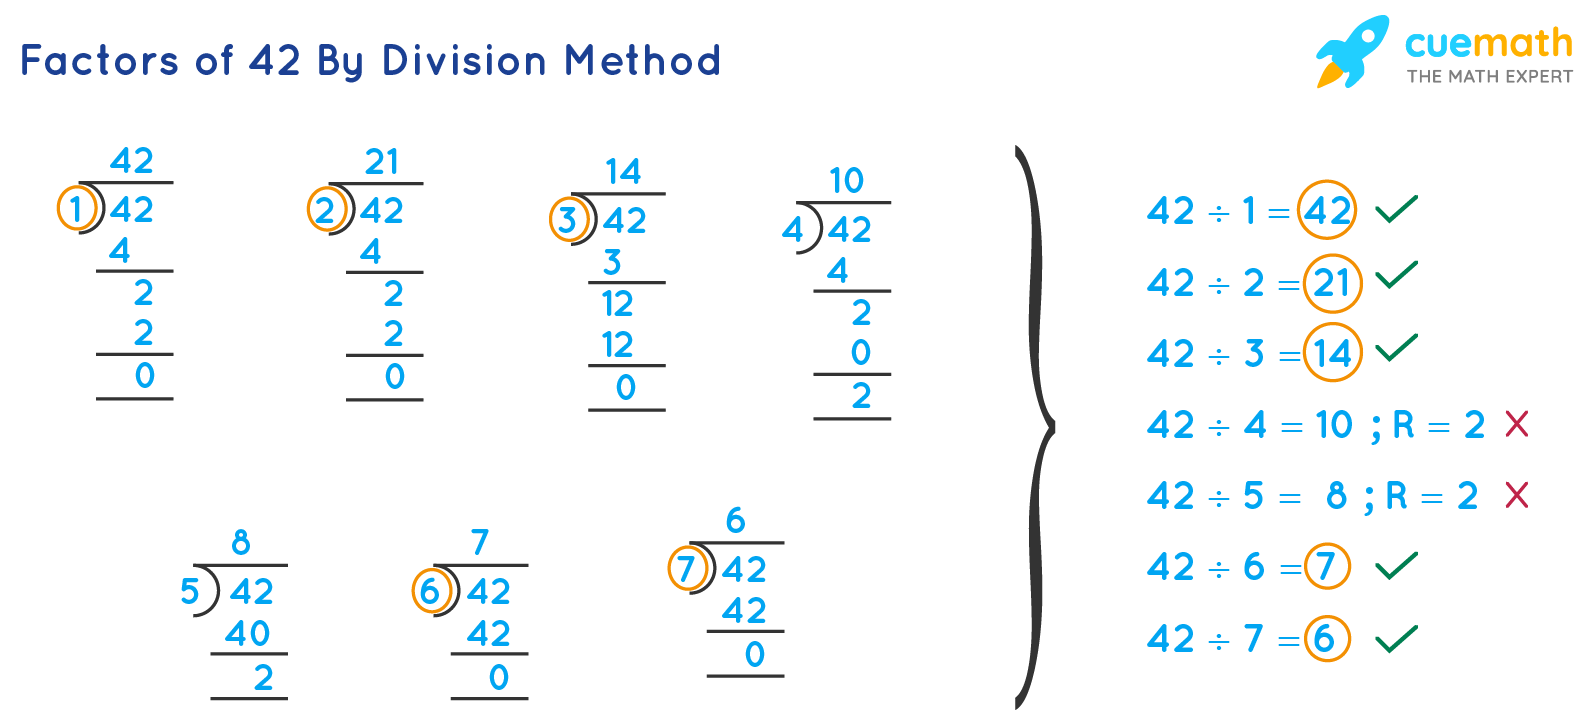 finding factors of 42 by division method